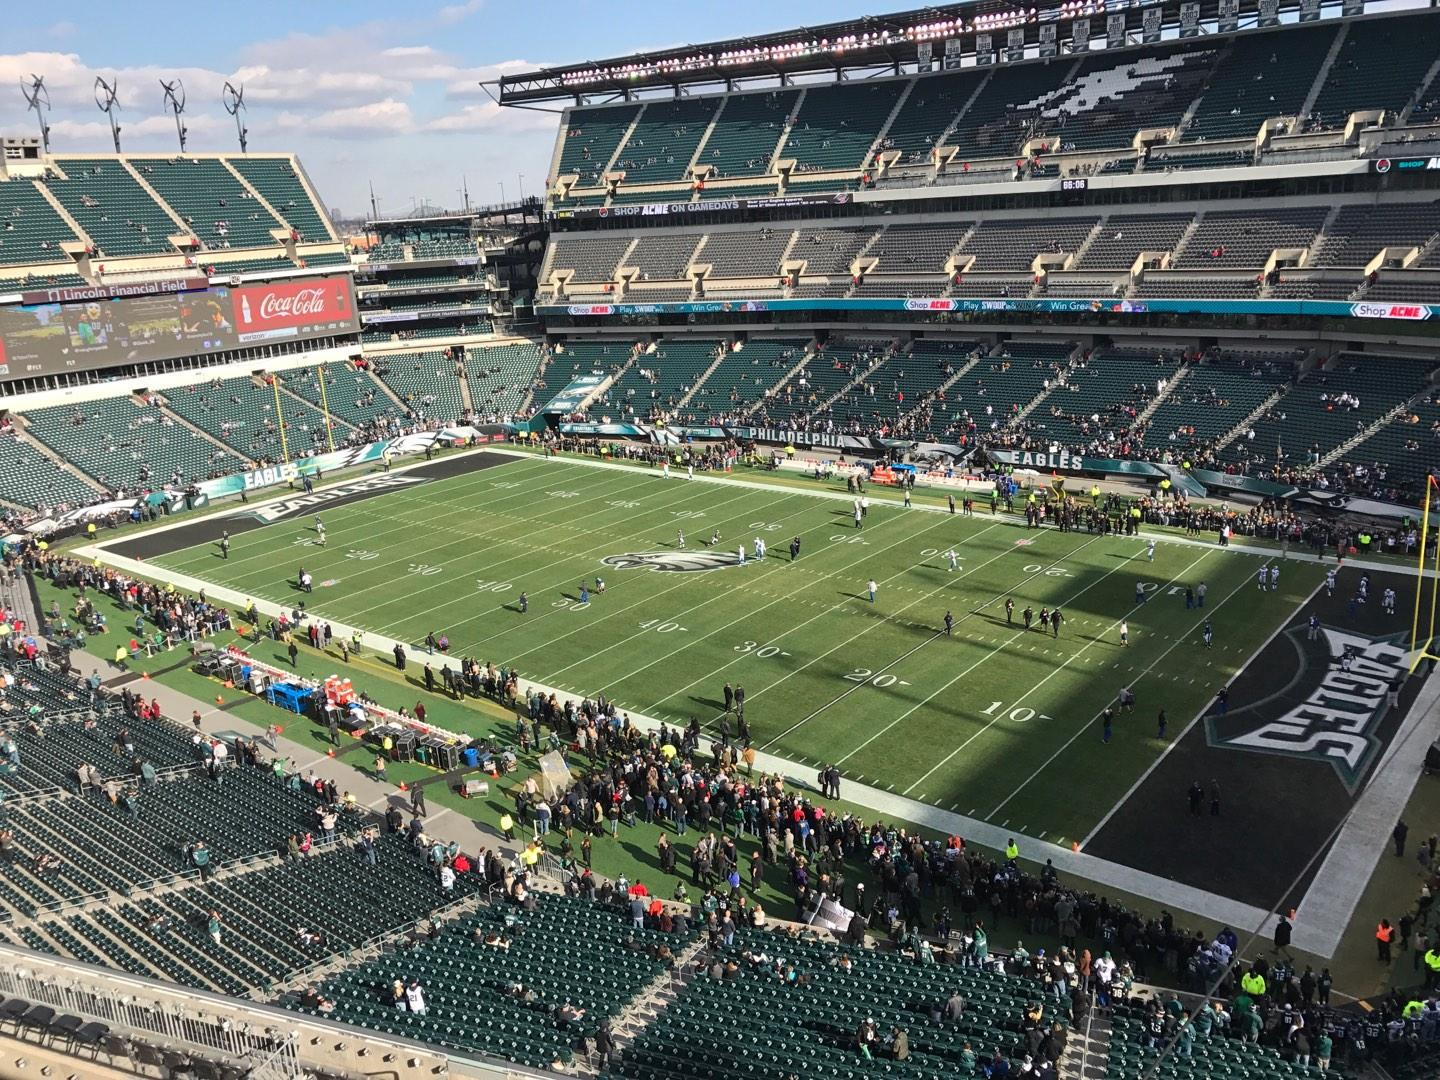 Lincoln Financial Field Section 206 Row 1 Seat 15